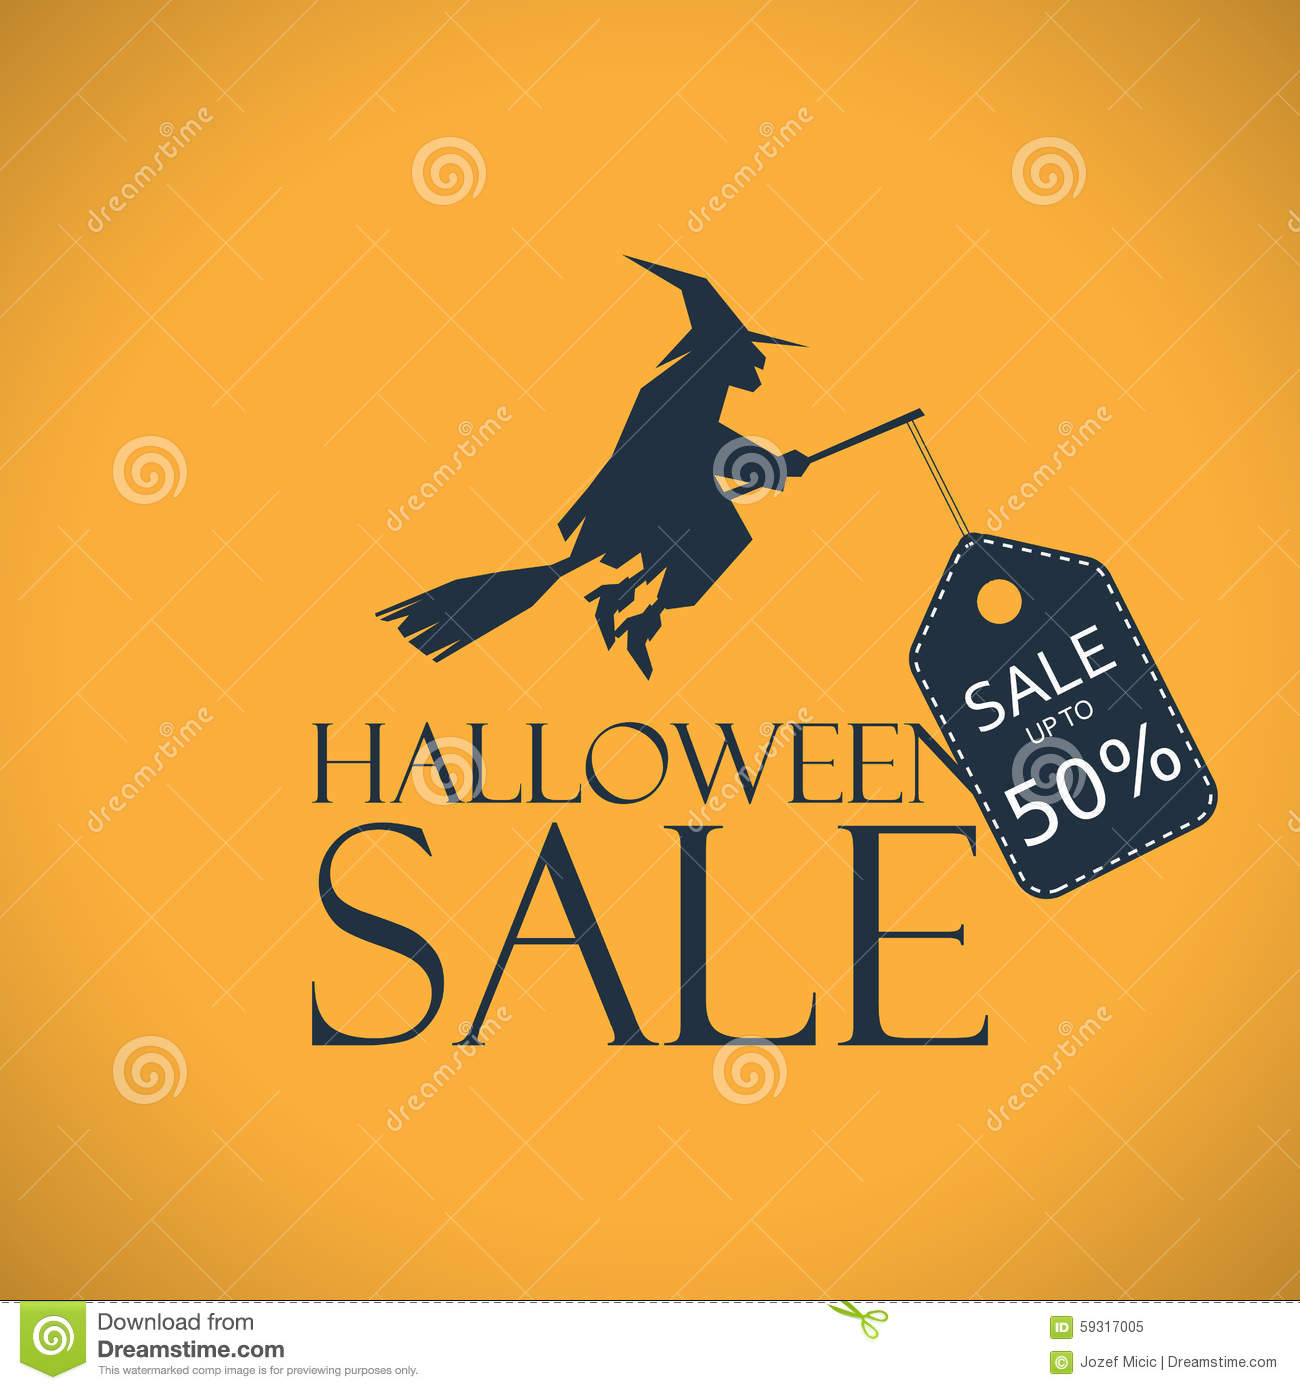 Halloween Sale Background. Seasonal Clearance Stock Vector ...